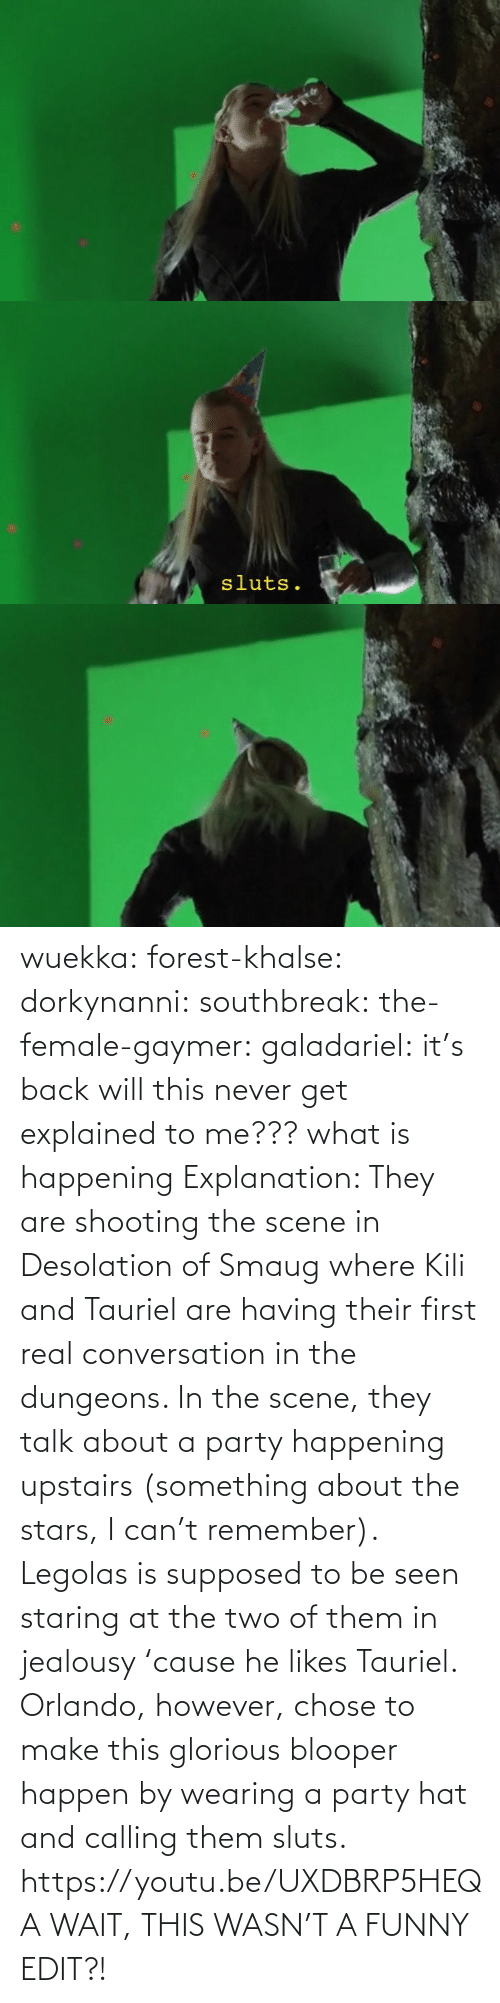 Funny, Love, and Party: wuekka: forest-khalse:   dorkynanni:  southbreak:   the-female-gaymer:   galadariel:  it's back   will this never get explained to me???    what is happening    Explanation:  They are shooting the scene in Desolation of Smaug where Kili and Tauriel are having their first real conversation in the dungeons.  In the scene, they talk about a party happening upstairs (something about the stars, I can't remember). Legolas is supposed to be seen staring at the two of them in jealousy 'cause he likes Tauriel.  Orlando, however, chose to make this glorious blooper happen by wearing a party hat and calling them sluts.    https://youtu.be/UXDBRP5HEQA    WAIT, THIS WASN'T A FUNNY EDIT?!